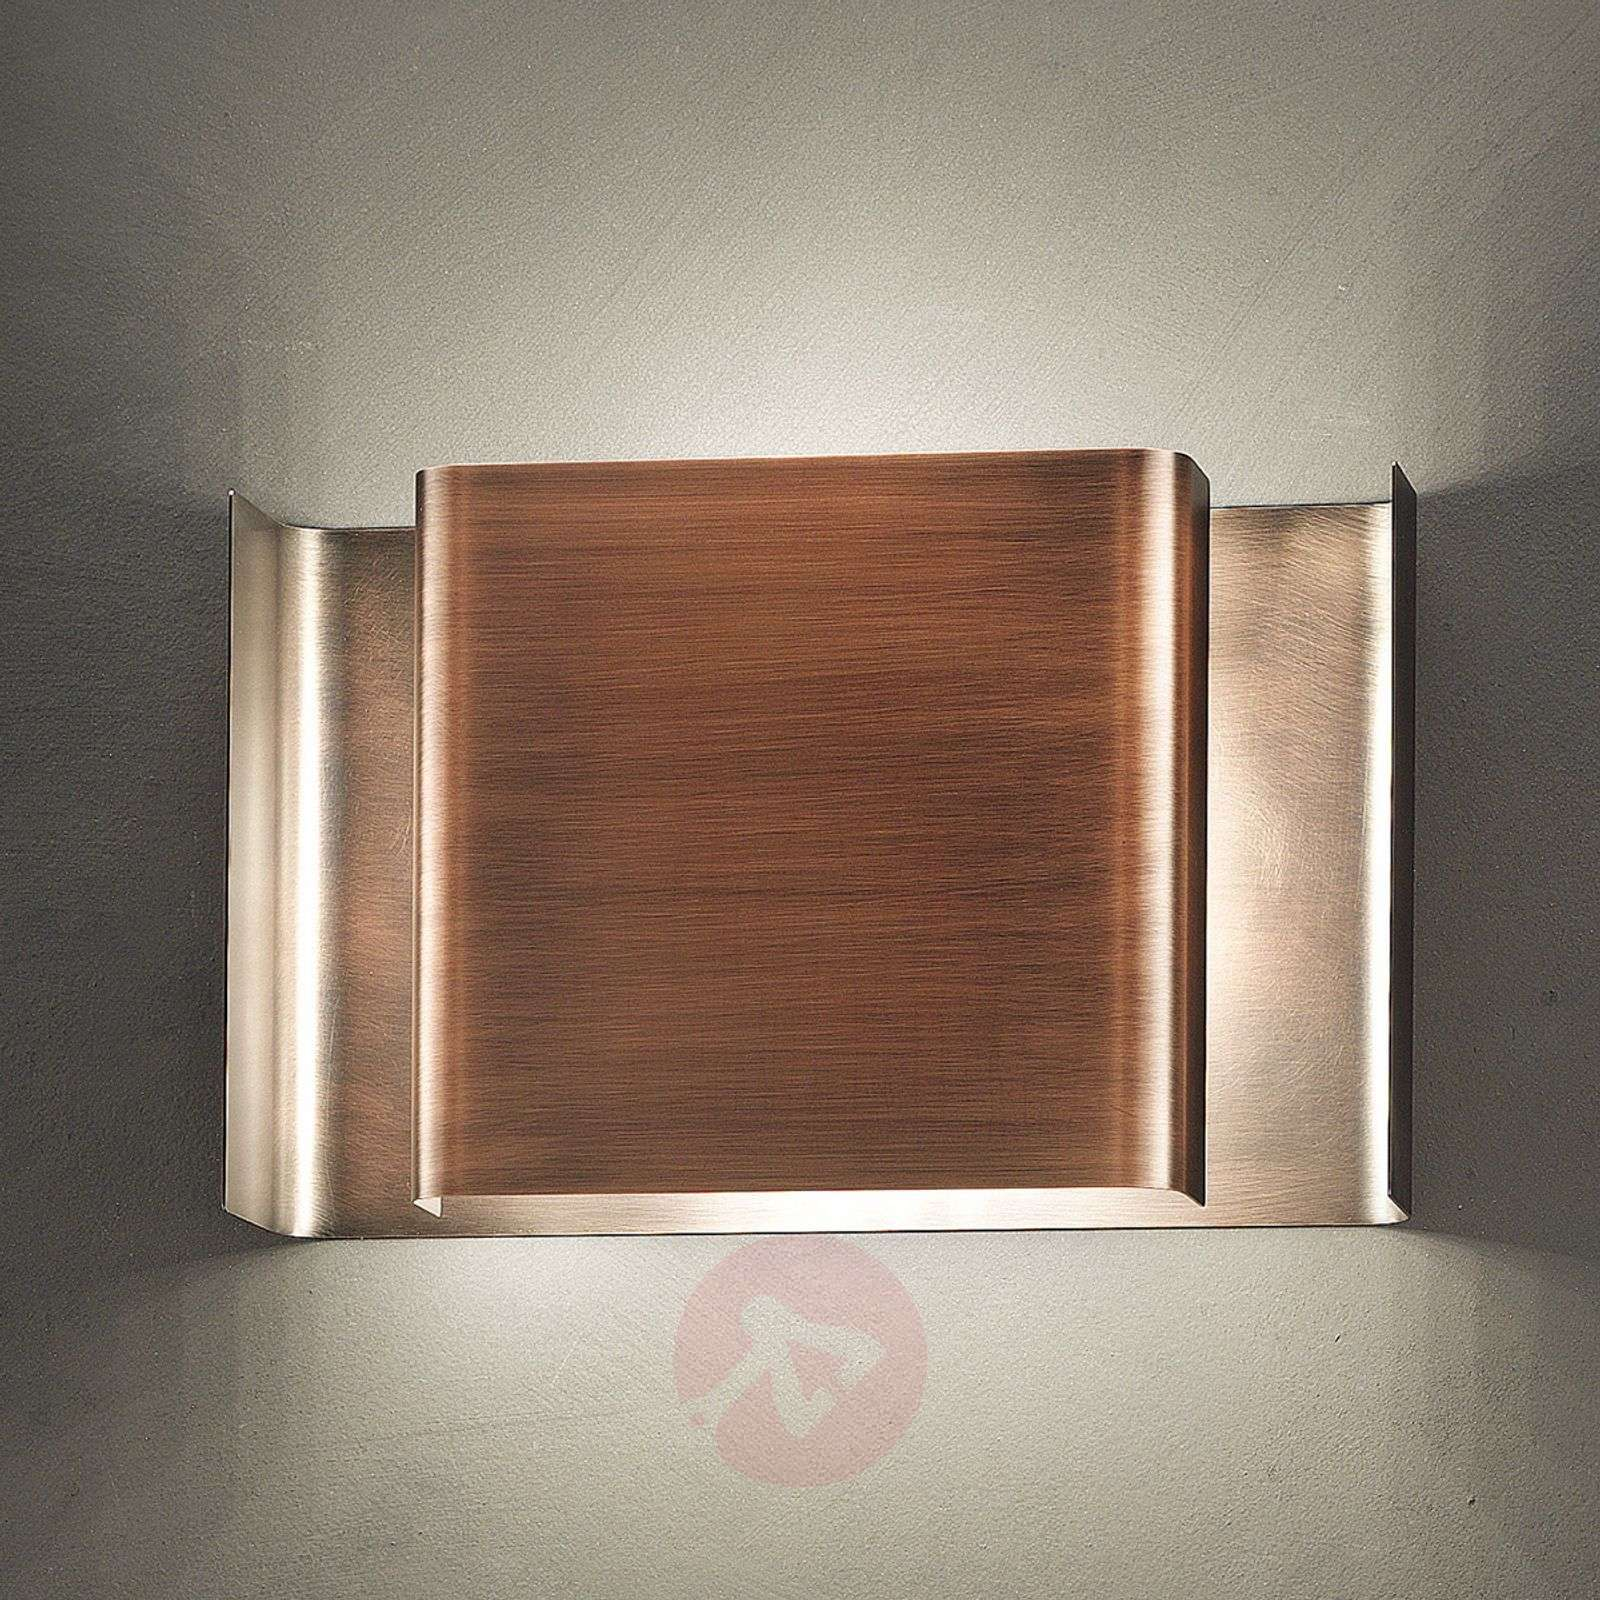 Applique a LED color bronzo Alalunga-5501114-01